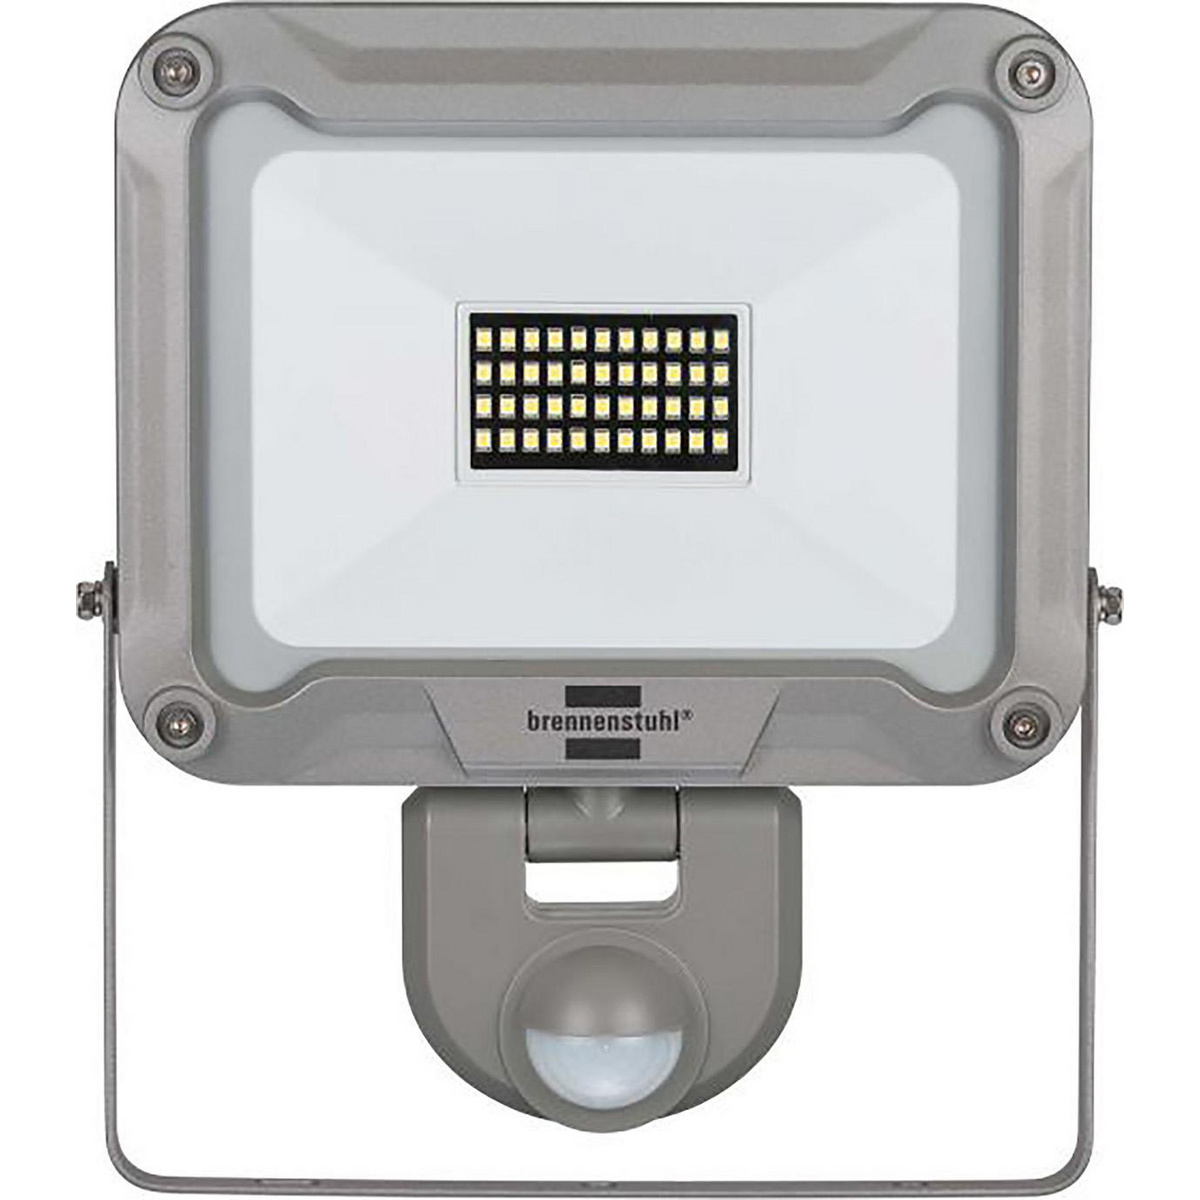 Slim LED spotlight L DN 5630 FL PIR IP 54. For outdoor and indoor mounting, IP 54 LED spotlight with 56 ultra-bright SMS LEDs Ideal for automatic lighting of entrances, driveways or carports, as well as for deterrence against burglary and theft Range: 12